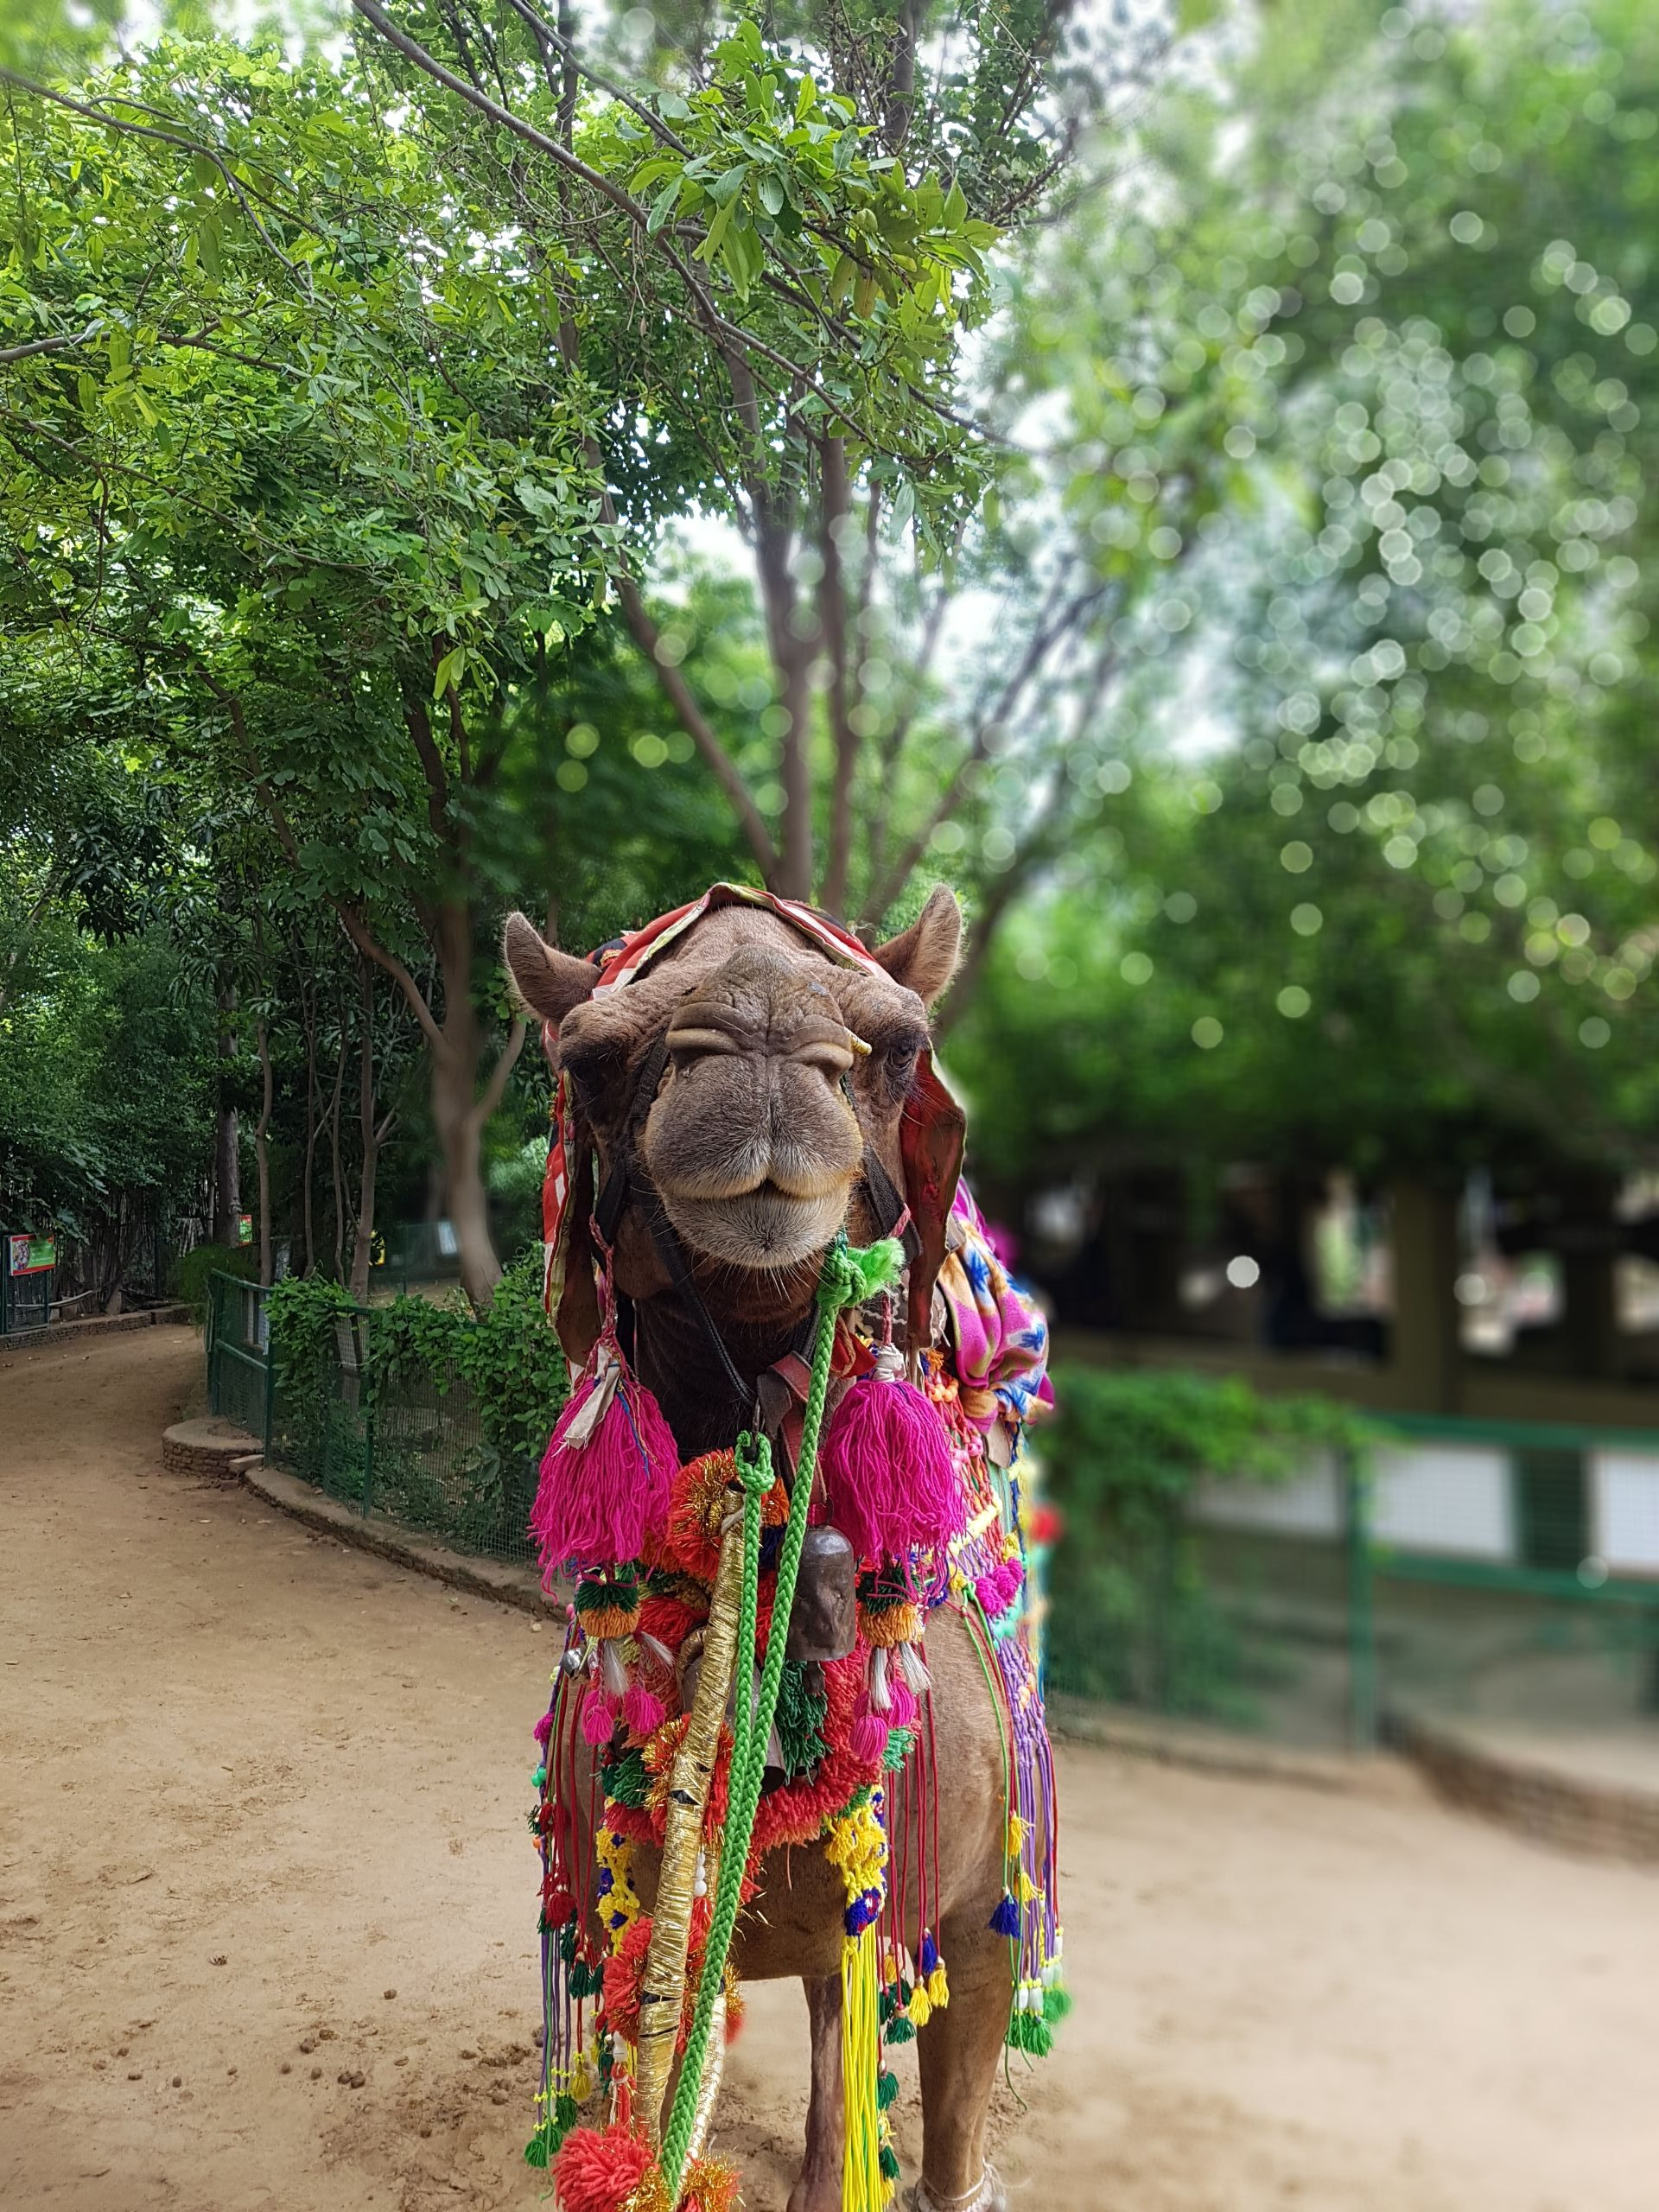 A Dromedary camel standing in a park.